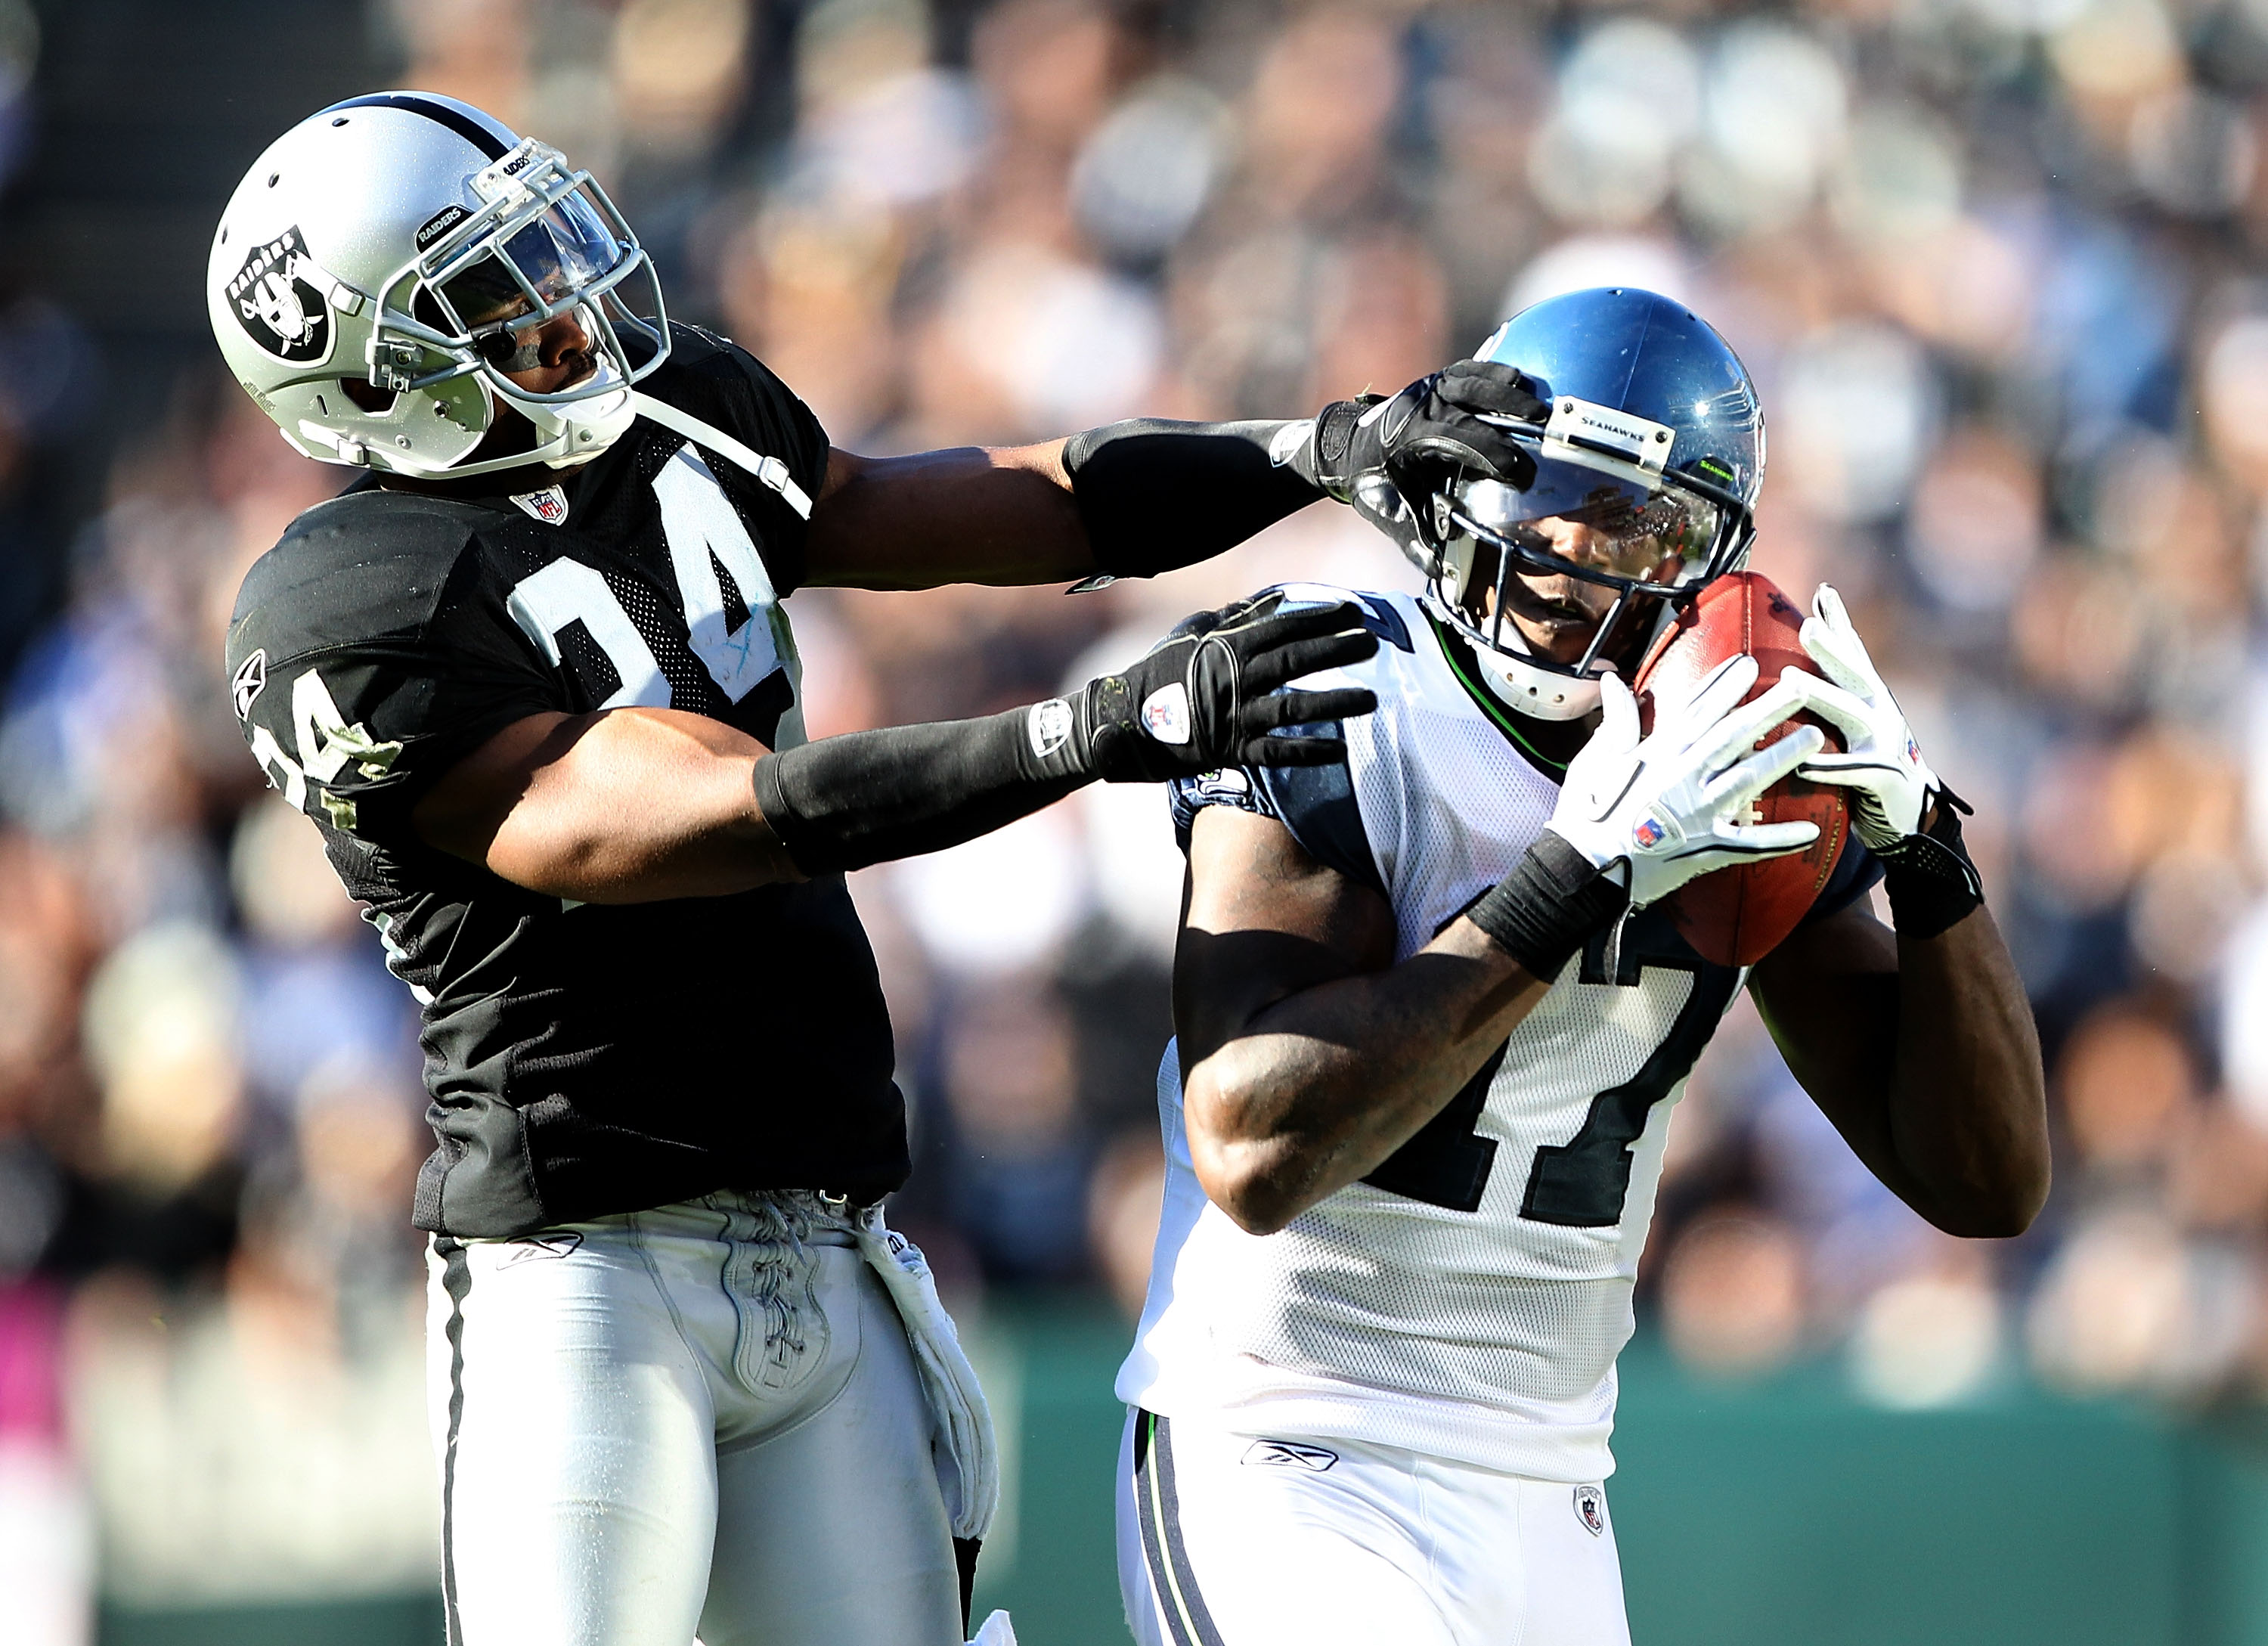 OAKLAND, CA - OCTOBER 31:  Mike Williams #17 of the Seattle Seahawks catches the ball while defended by Michael Huff #24 of the Oakland Raiders at Oakland-Alameda County Coliseum on October 31, 2010 in Oakland, California.  (Photo by Ezra Shaw/Getty Image